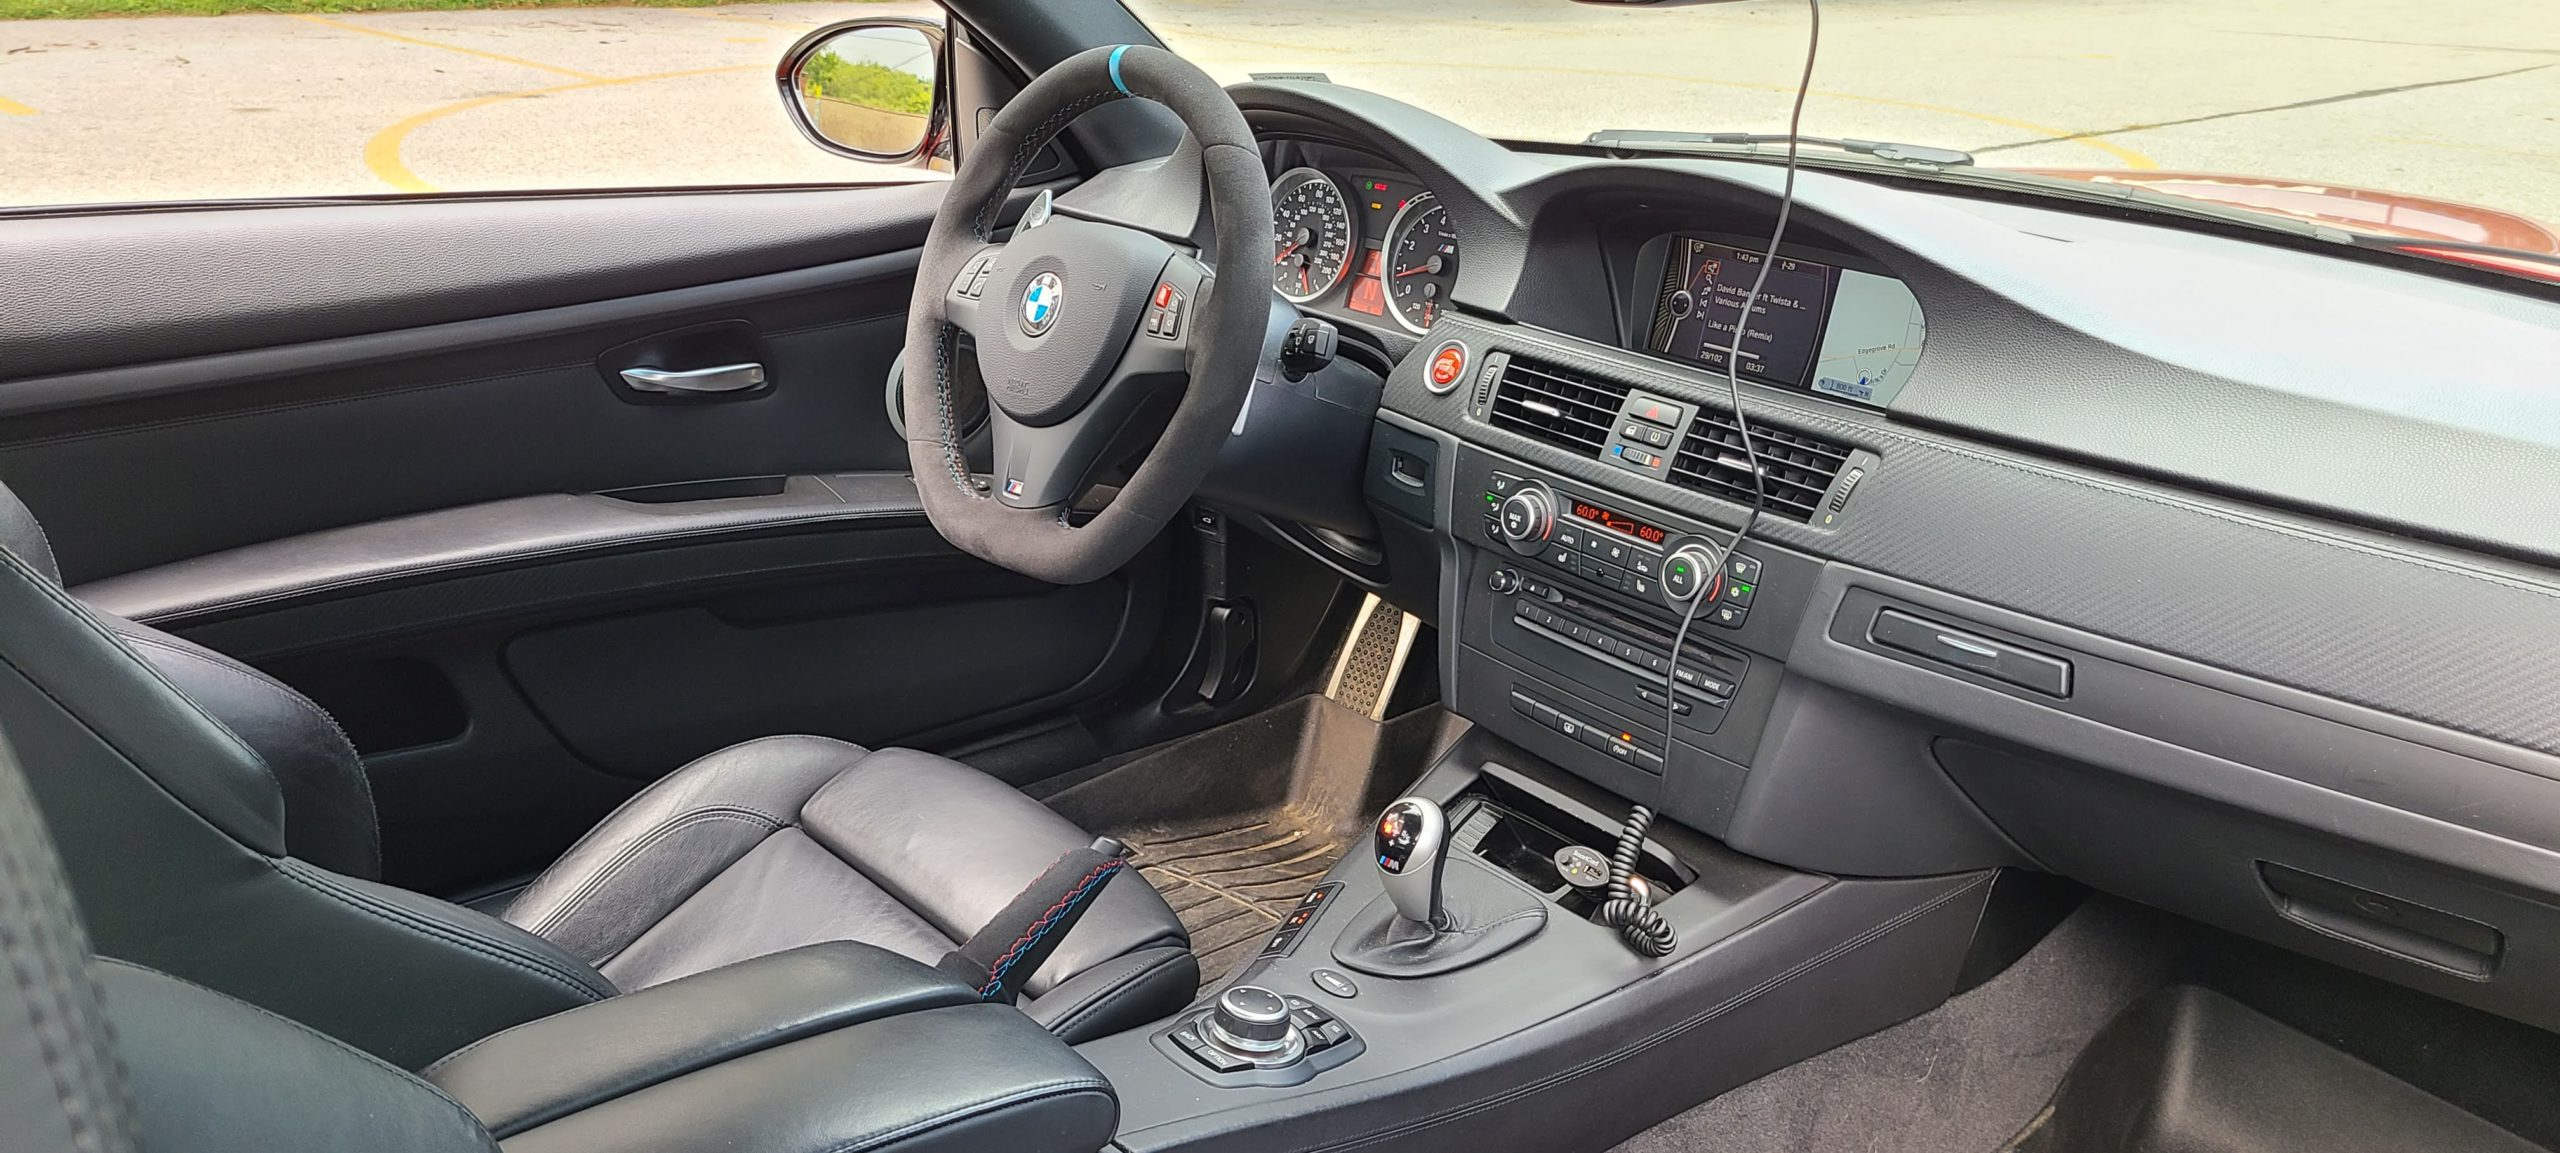 m3 interior daily driver